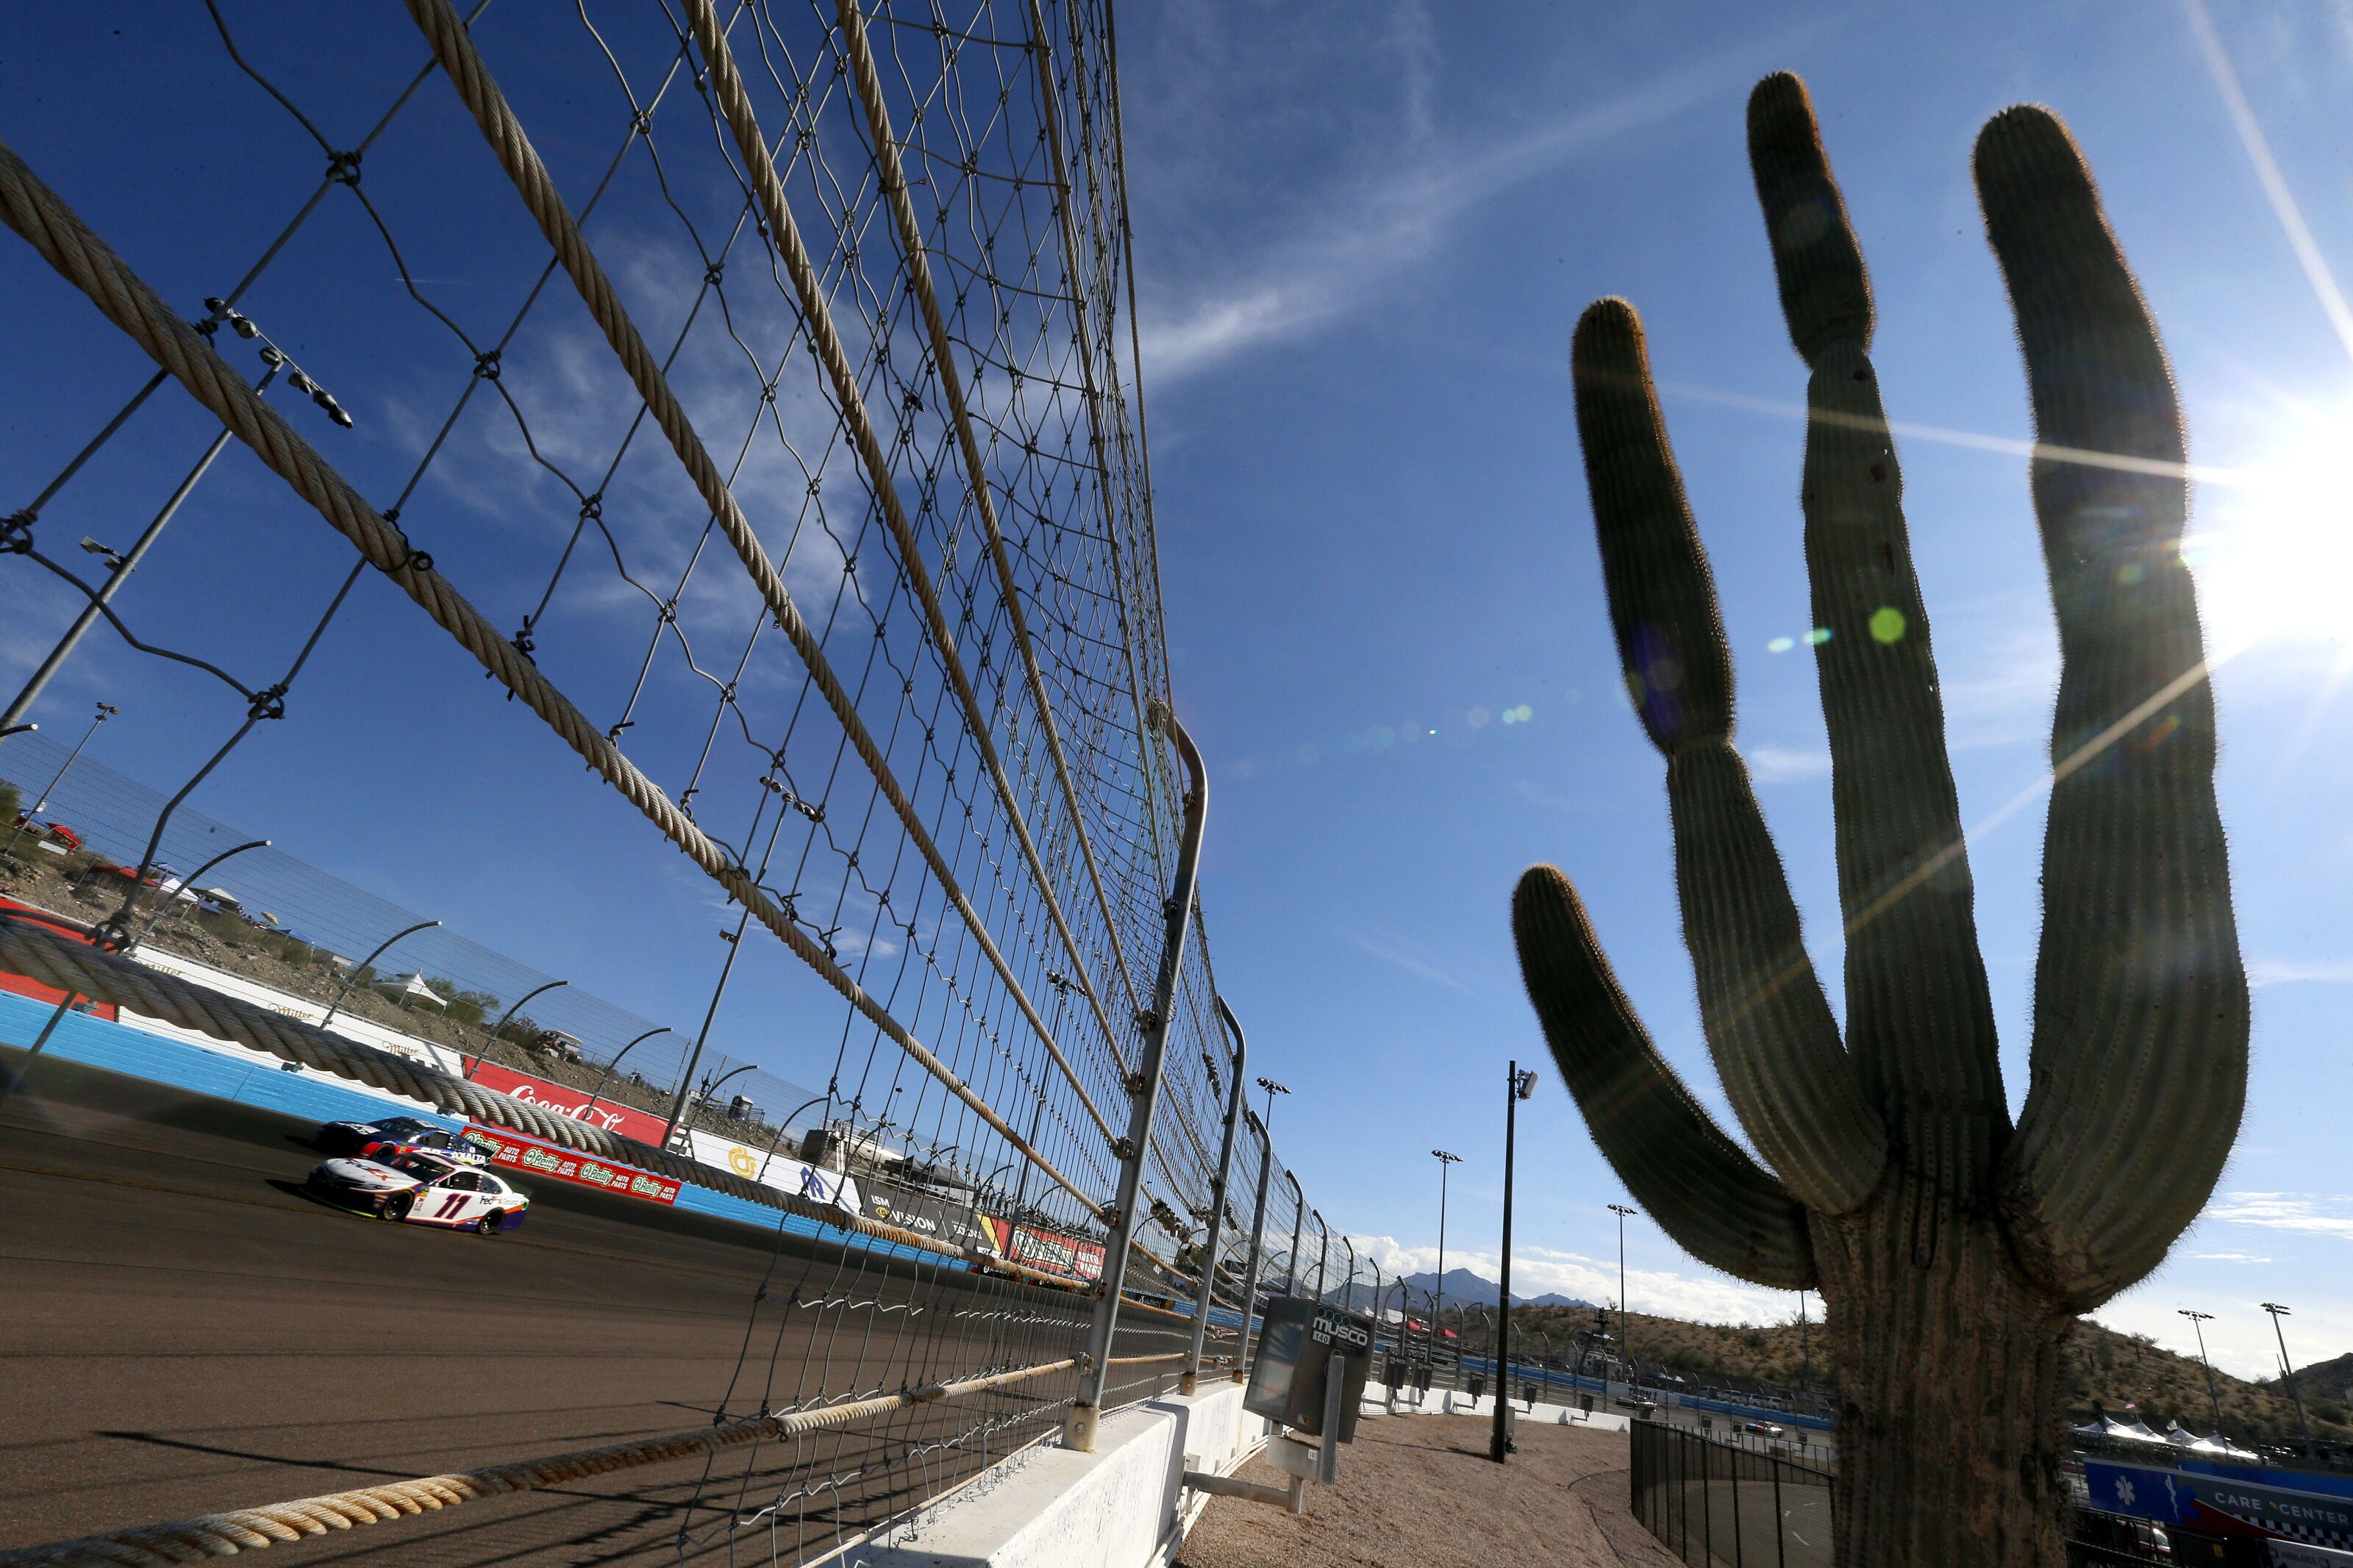 NASCAR track gets yet another name change